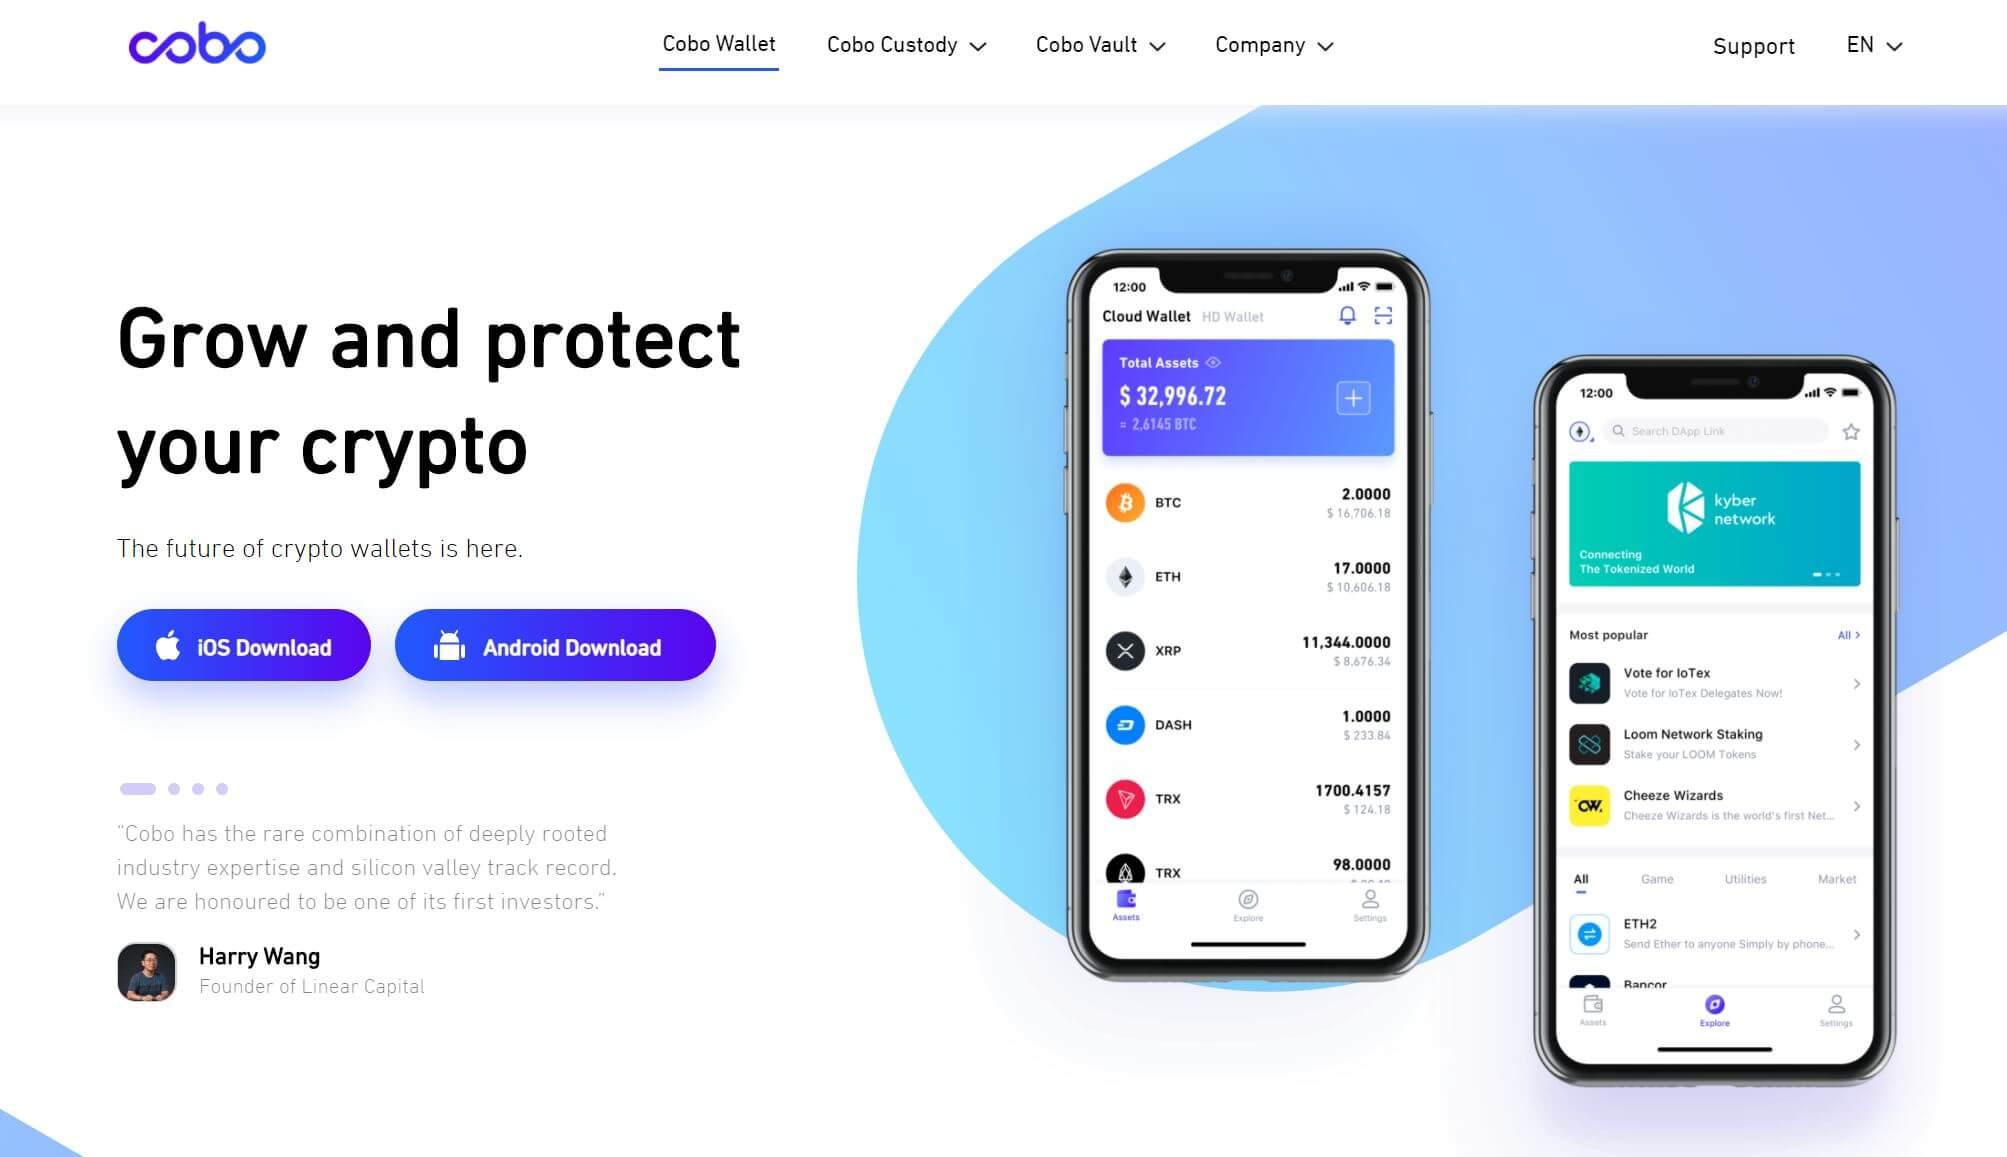 cobo wallet is a mobile wallet with staking features enabled